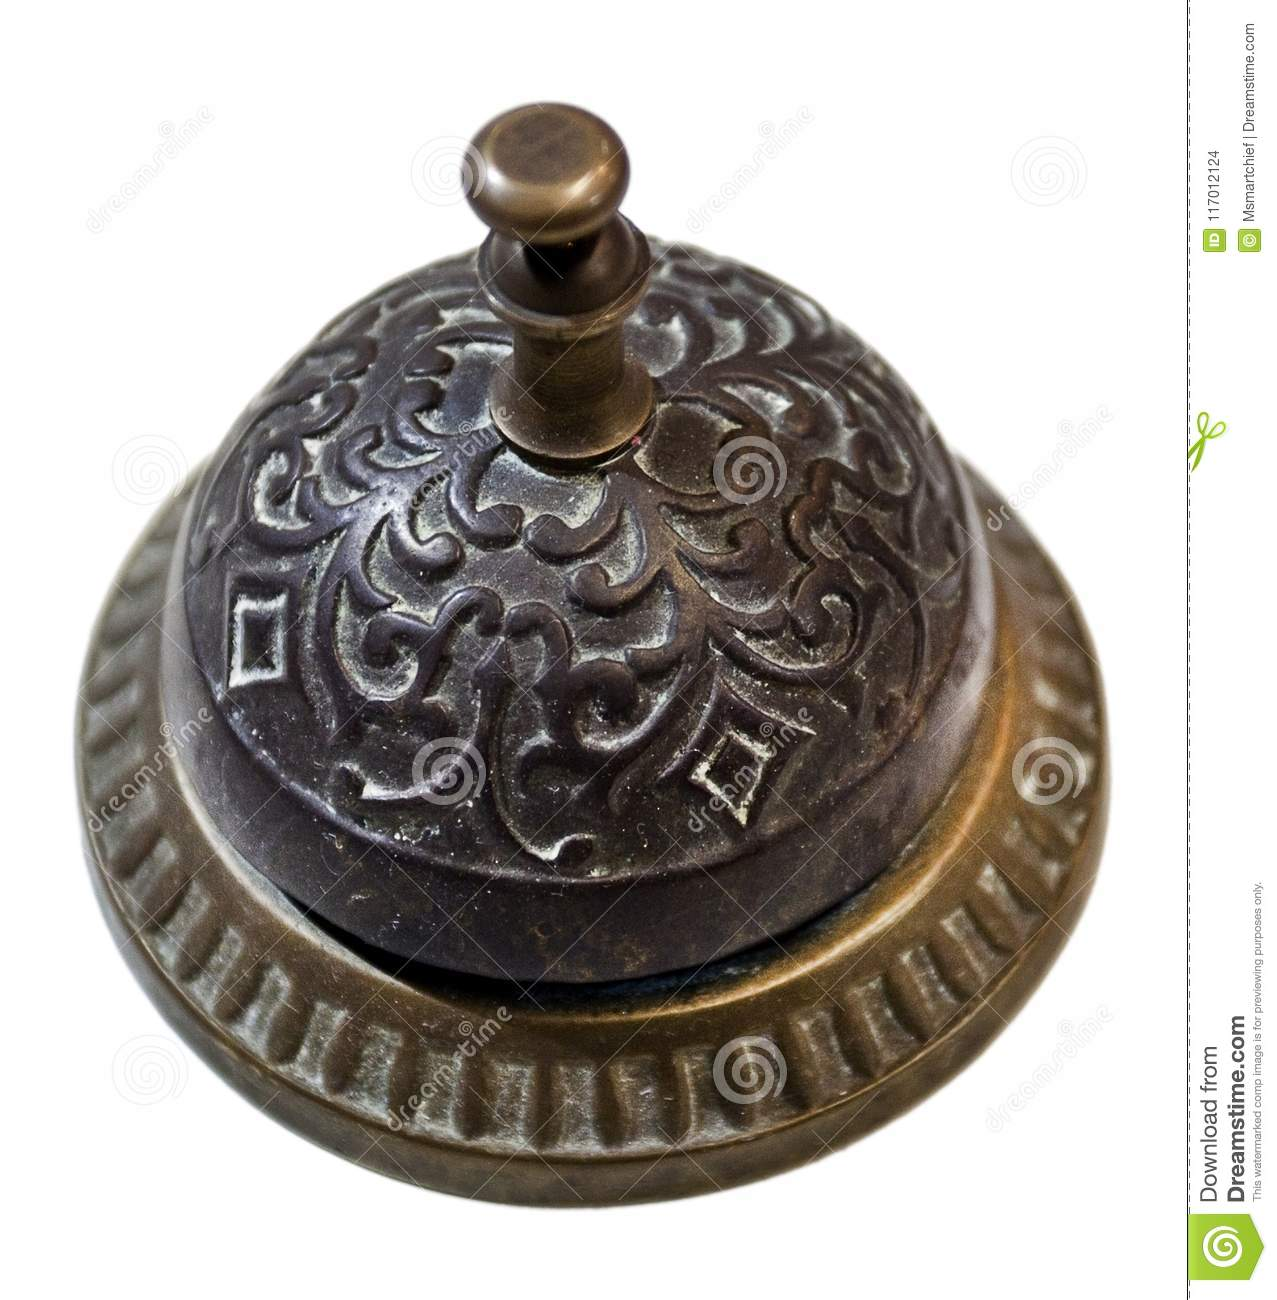 Antique Desk Bell - Antique Desk Bell Stock Photo. Image Of Isolated, Reception - 117012124